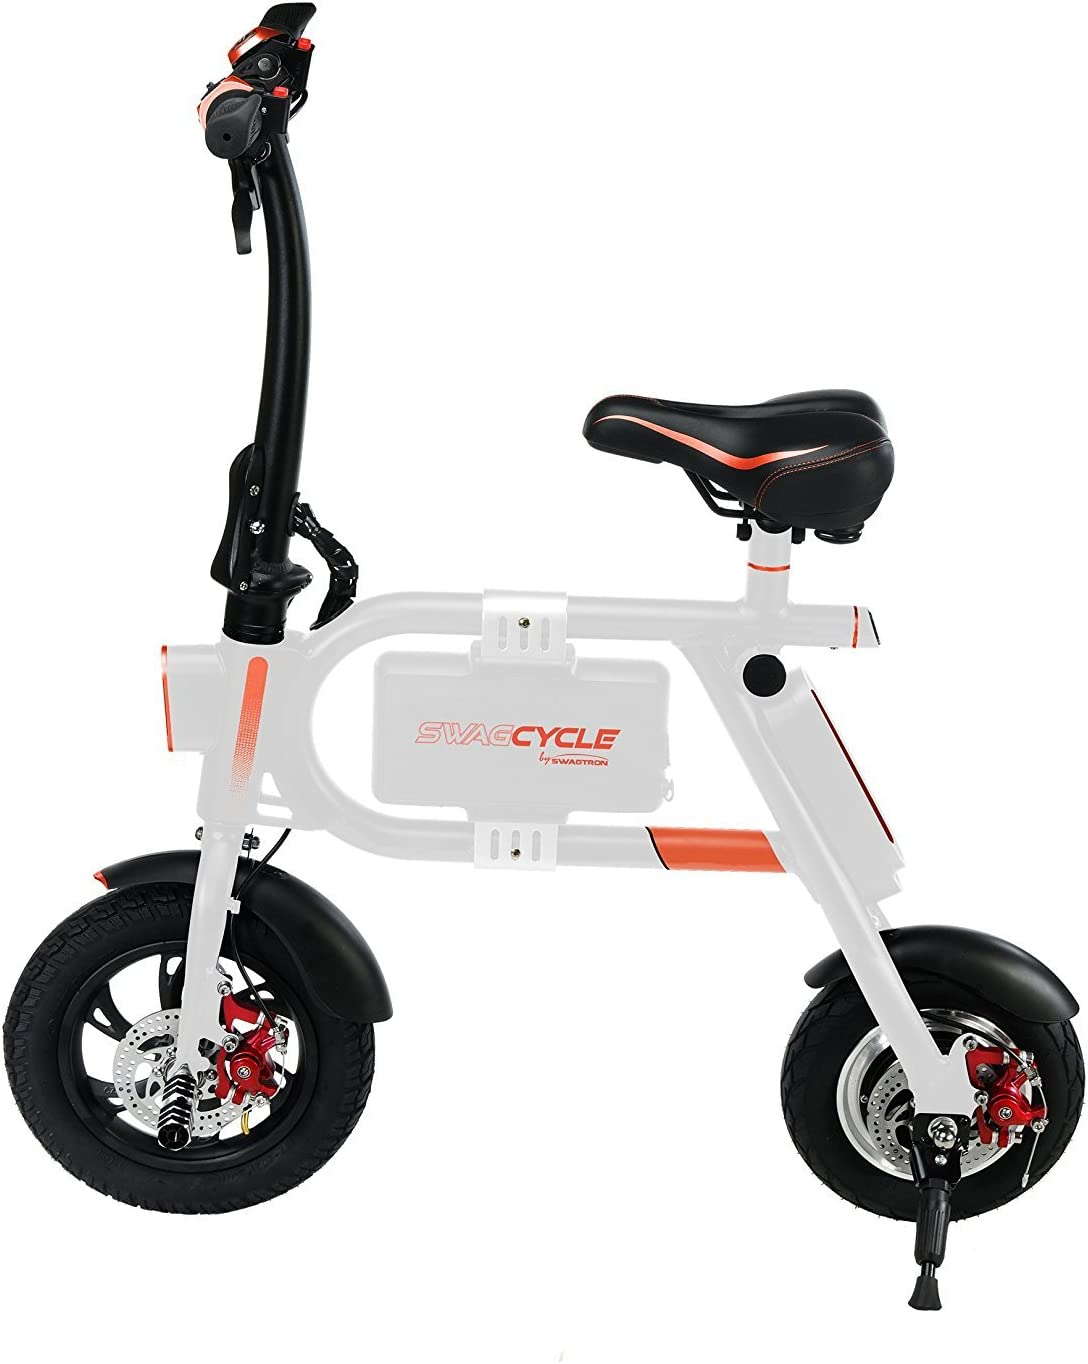 best electric bike under 1000: Swagtron SwagCycle Classic E-bike